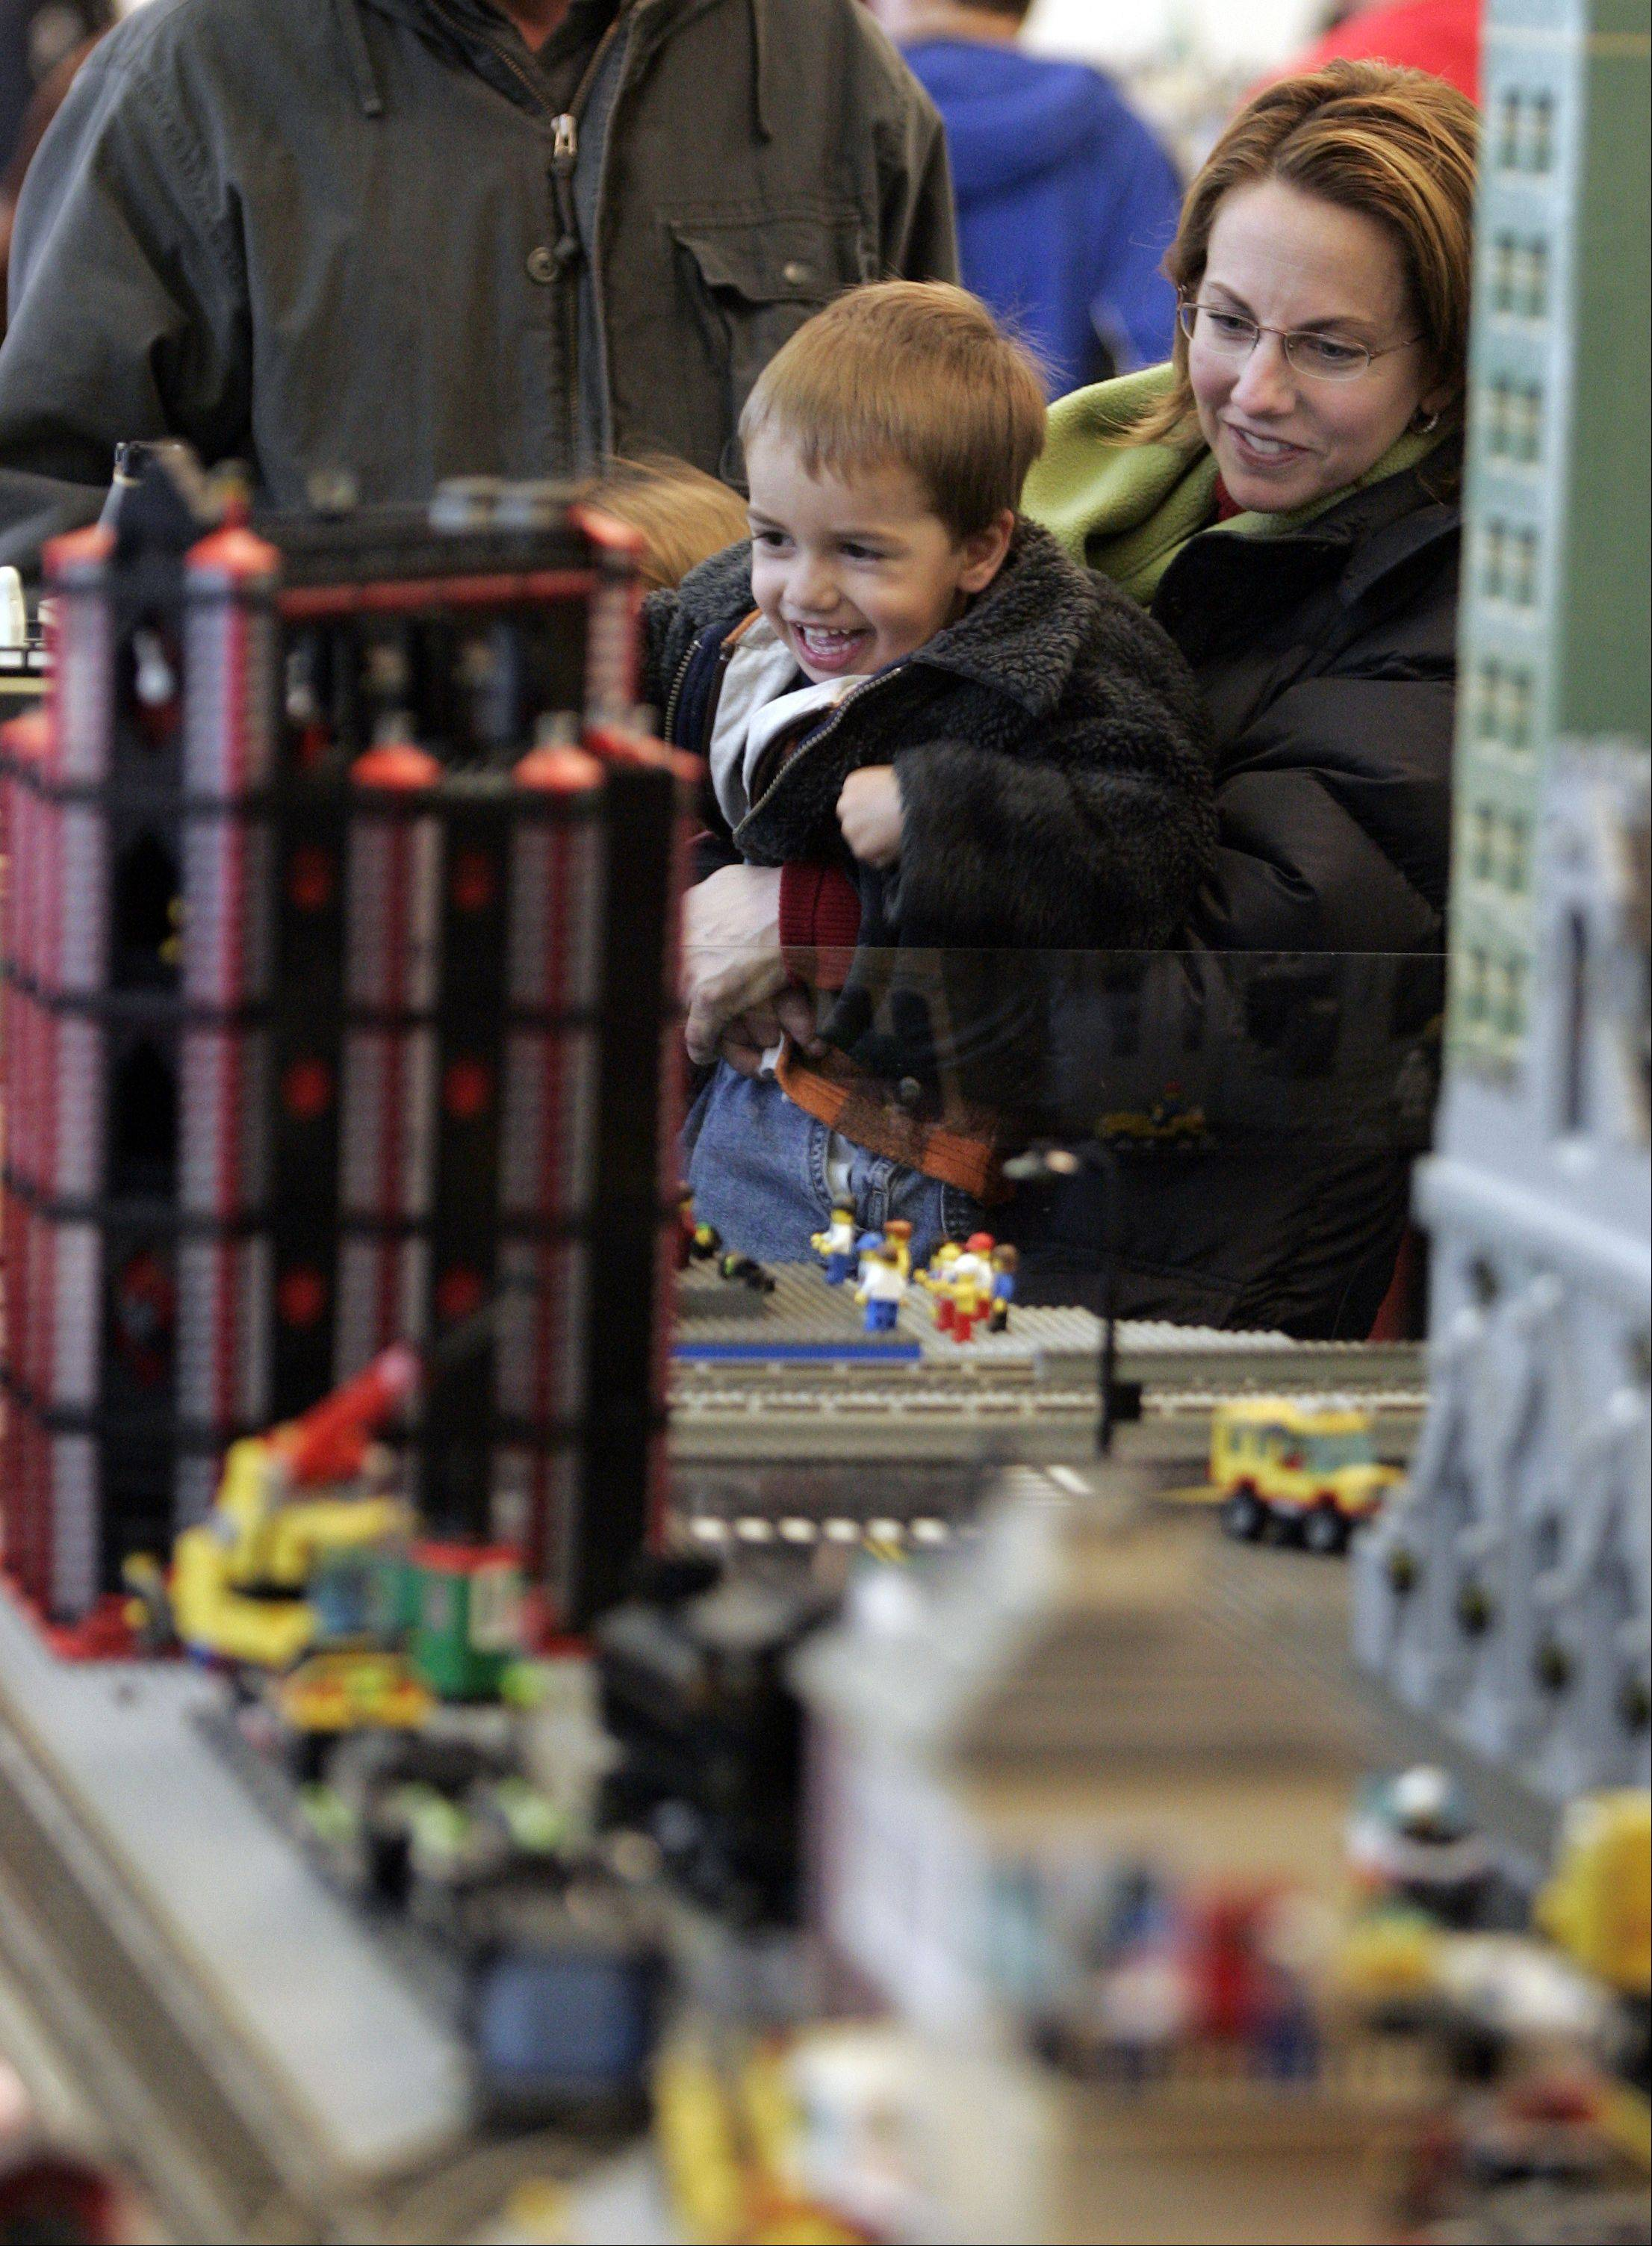 Detailed Lego city scenes and working trains are sure to delight visitors of all ages at Cantigny Park in Wheaton.